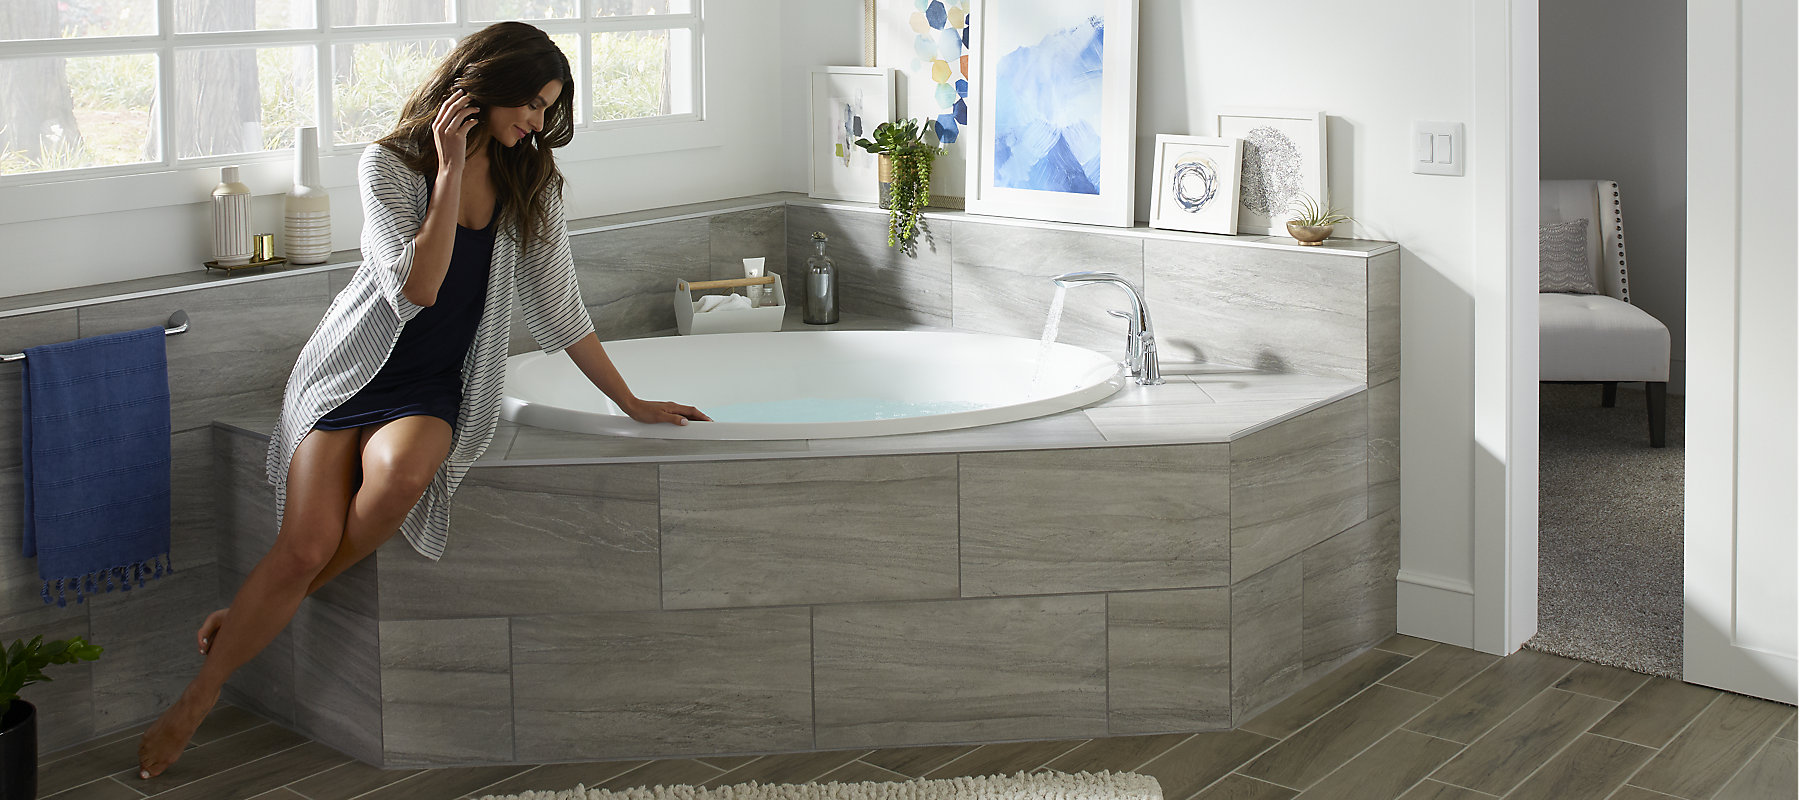 3 Steps to a Better Bathroom